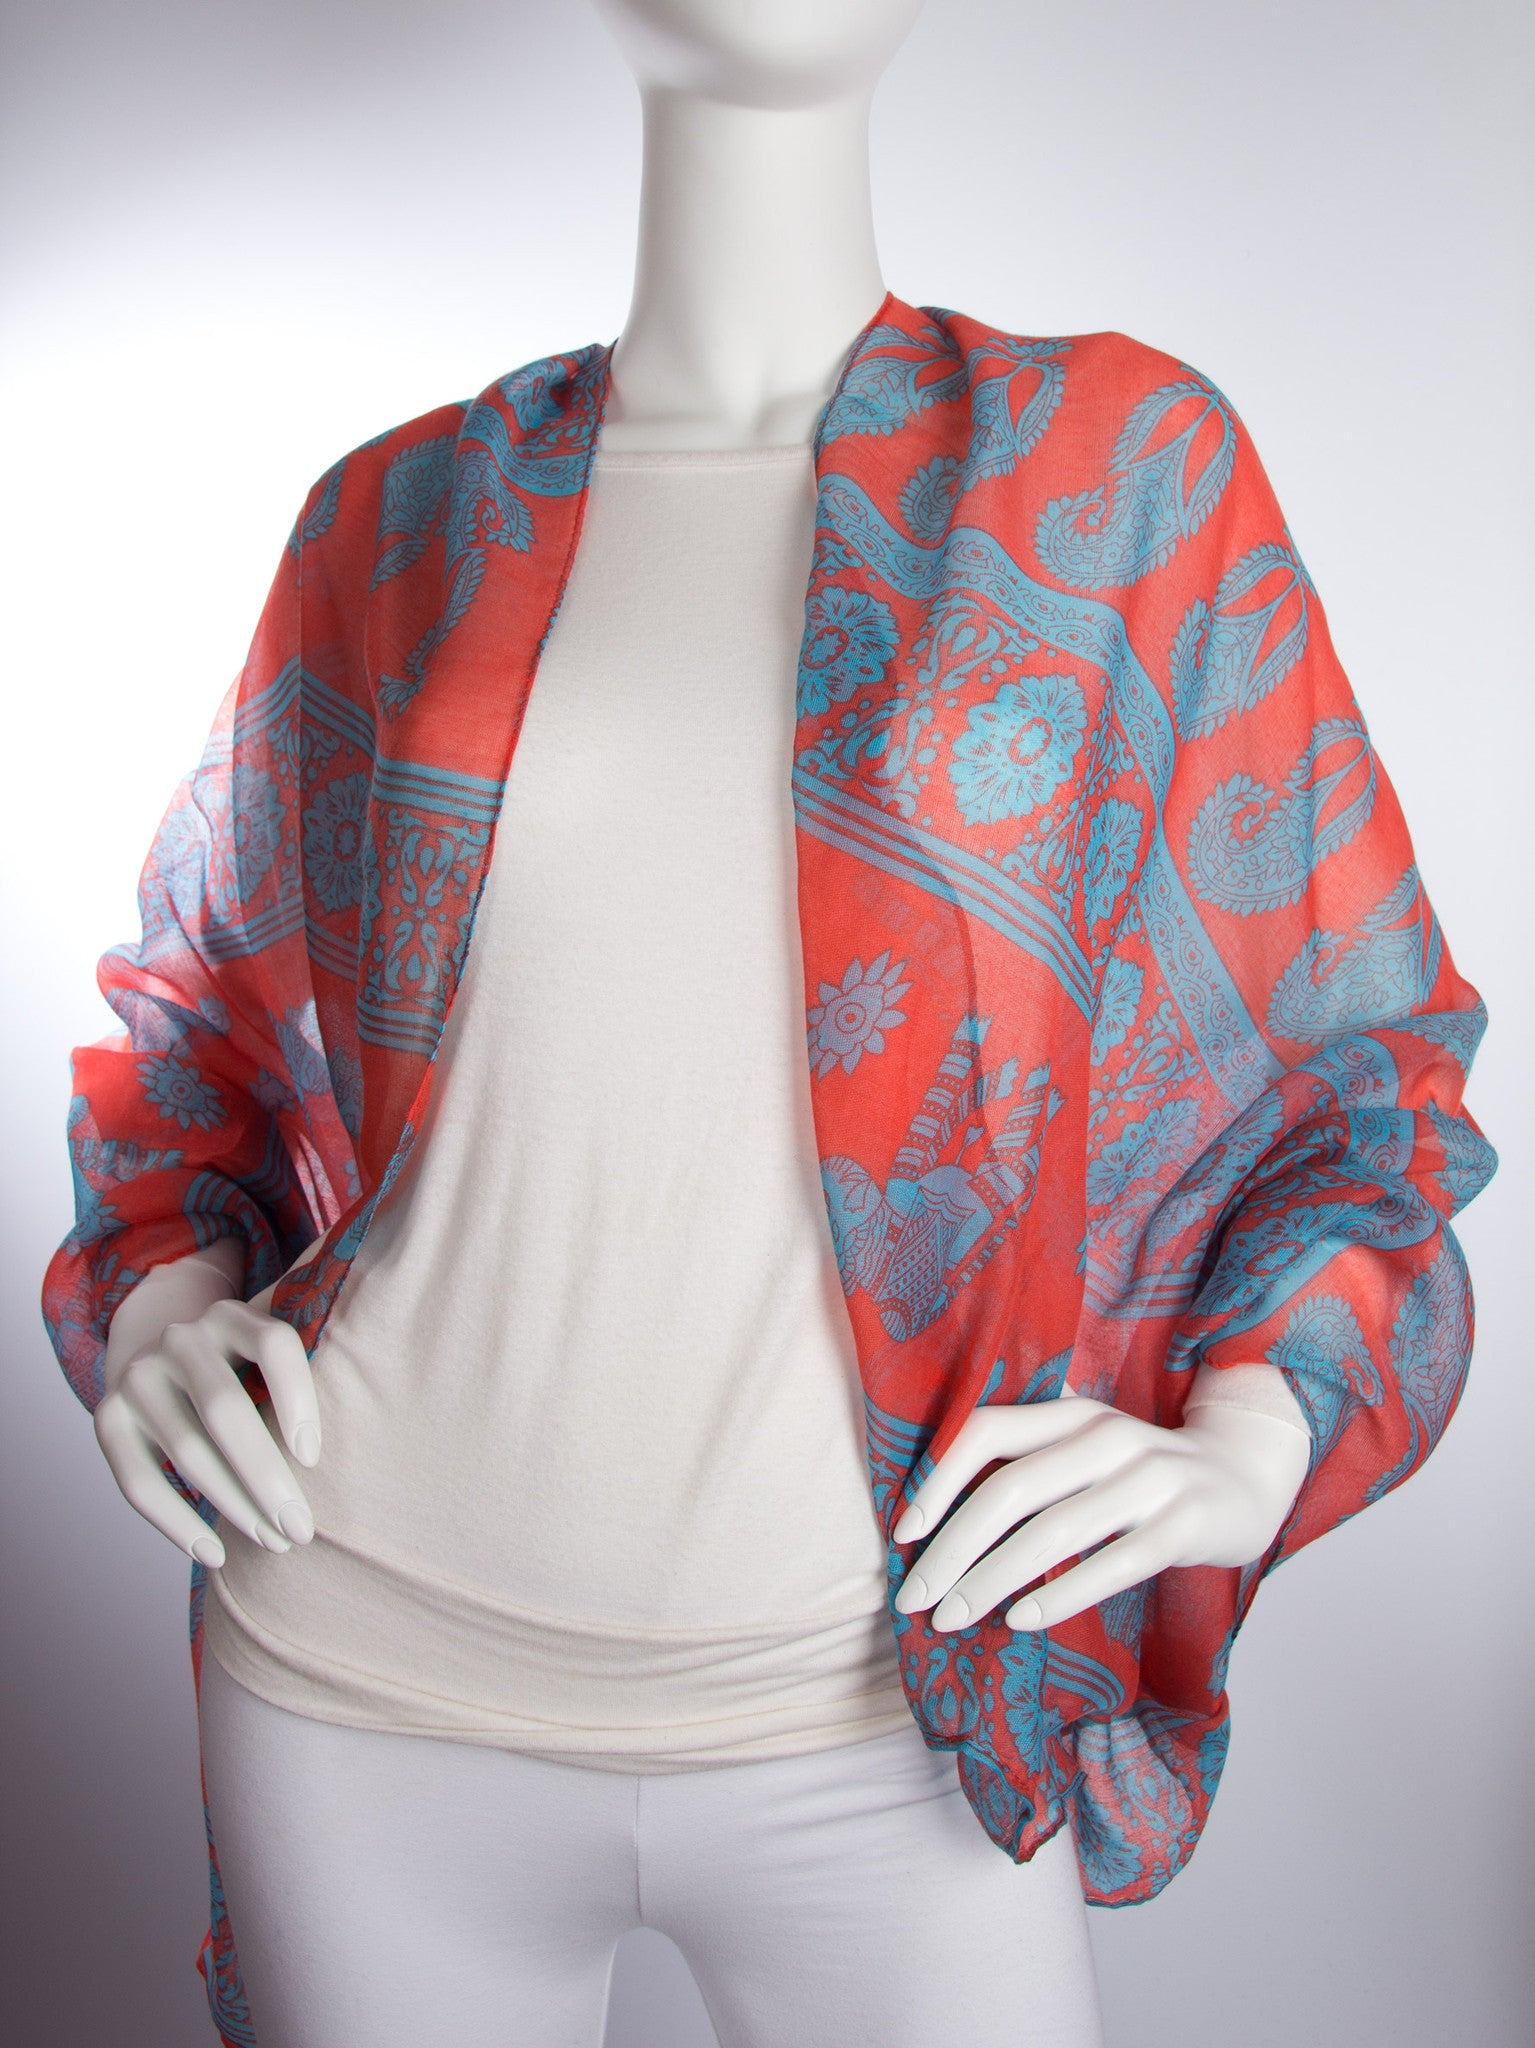 Scarves - Gaja Shawl, Paisley Indian Elephant Print Scarf, Shawl, Beach Wrap -() Bohomonde  - 11